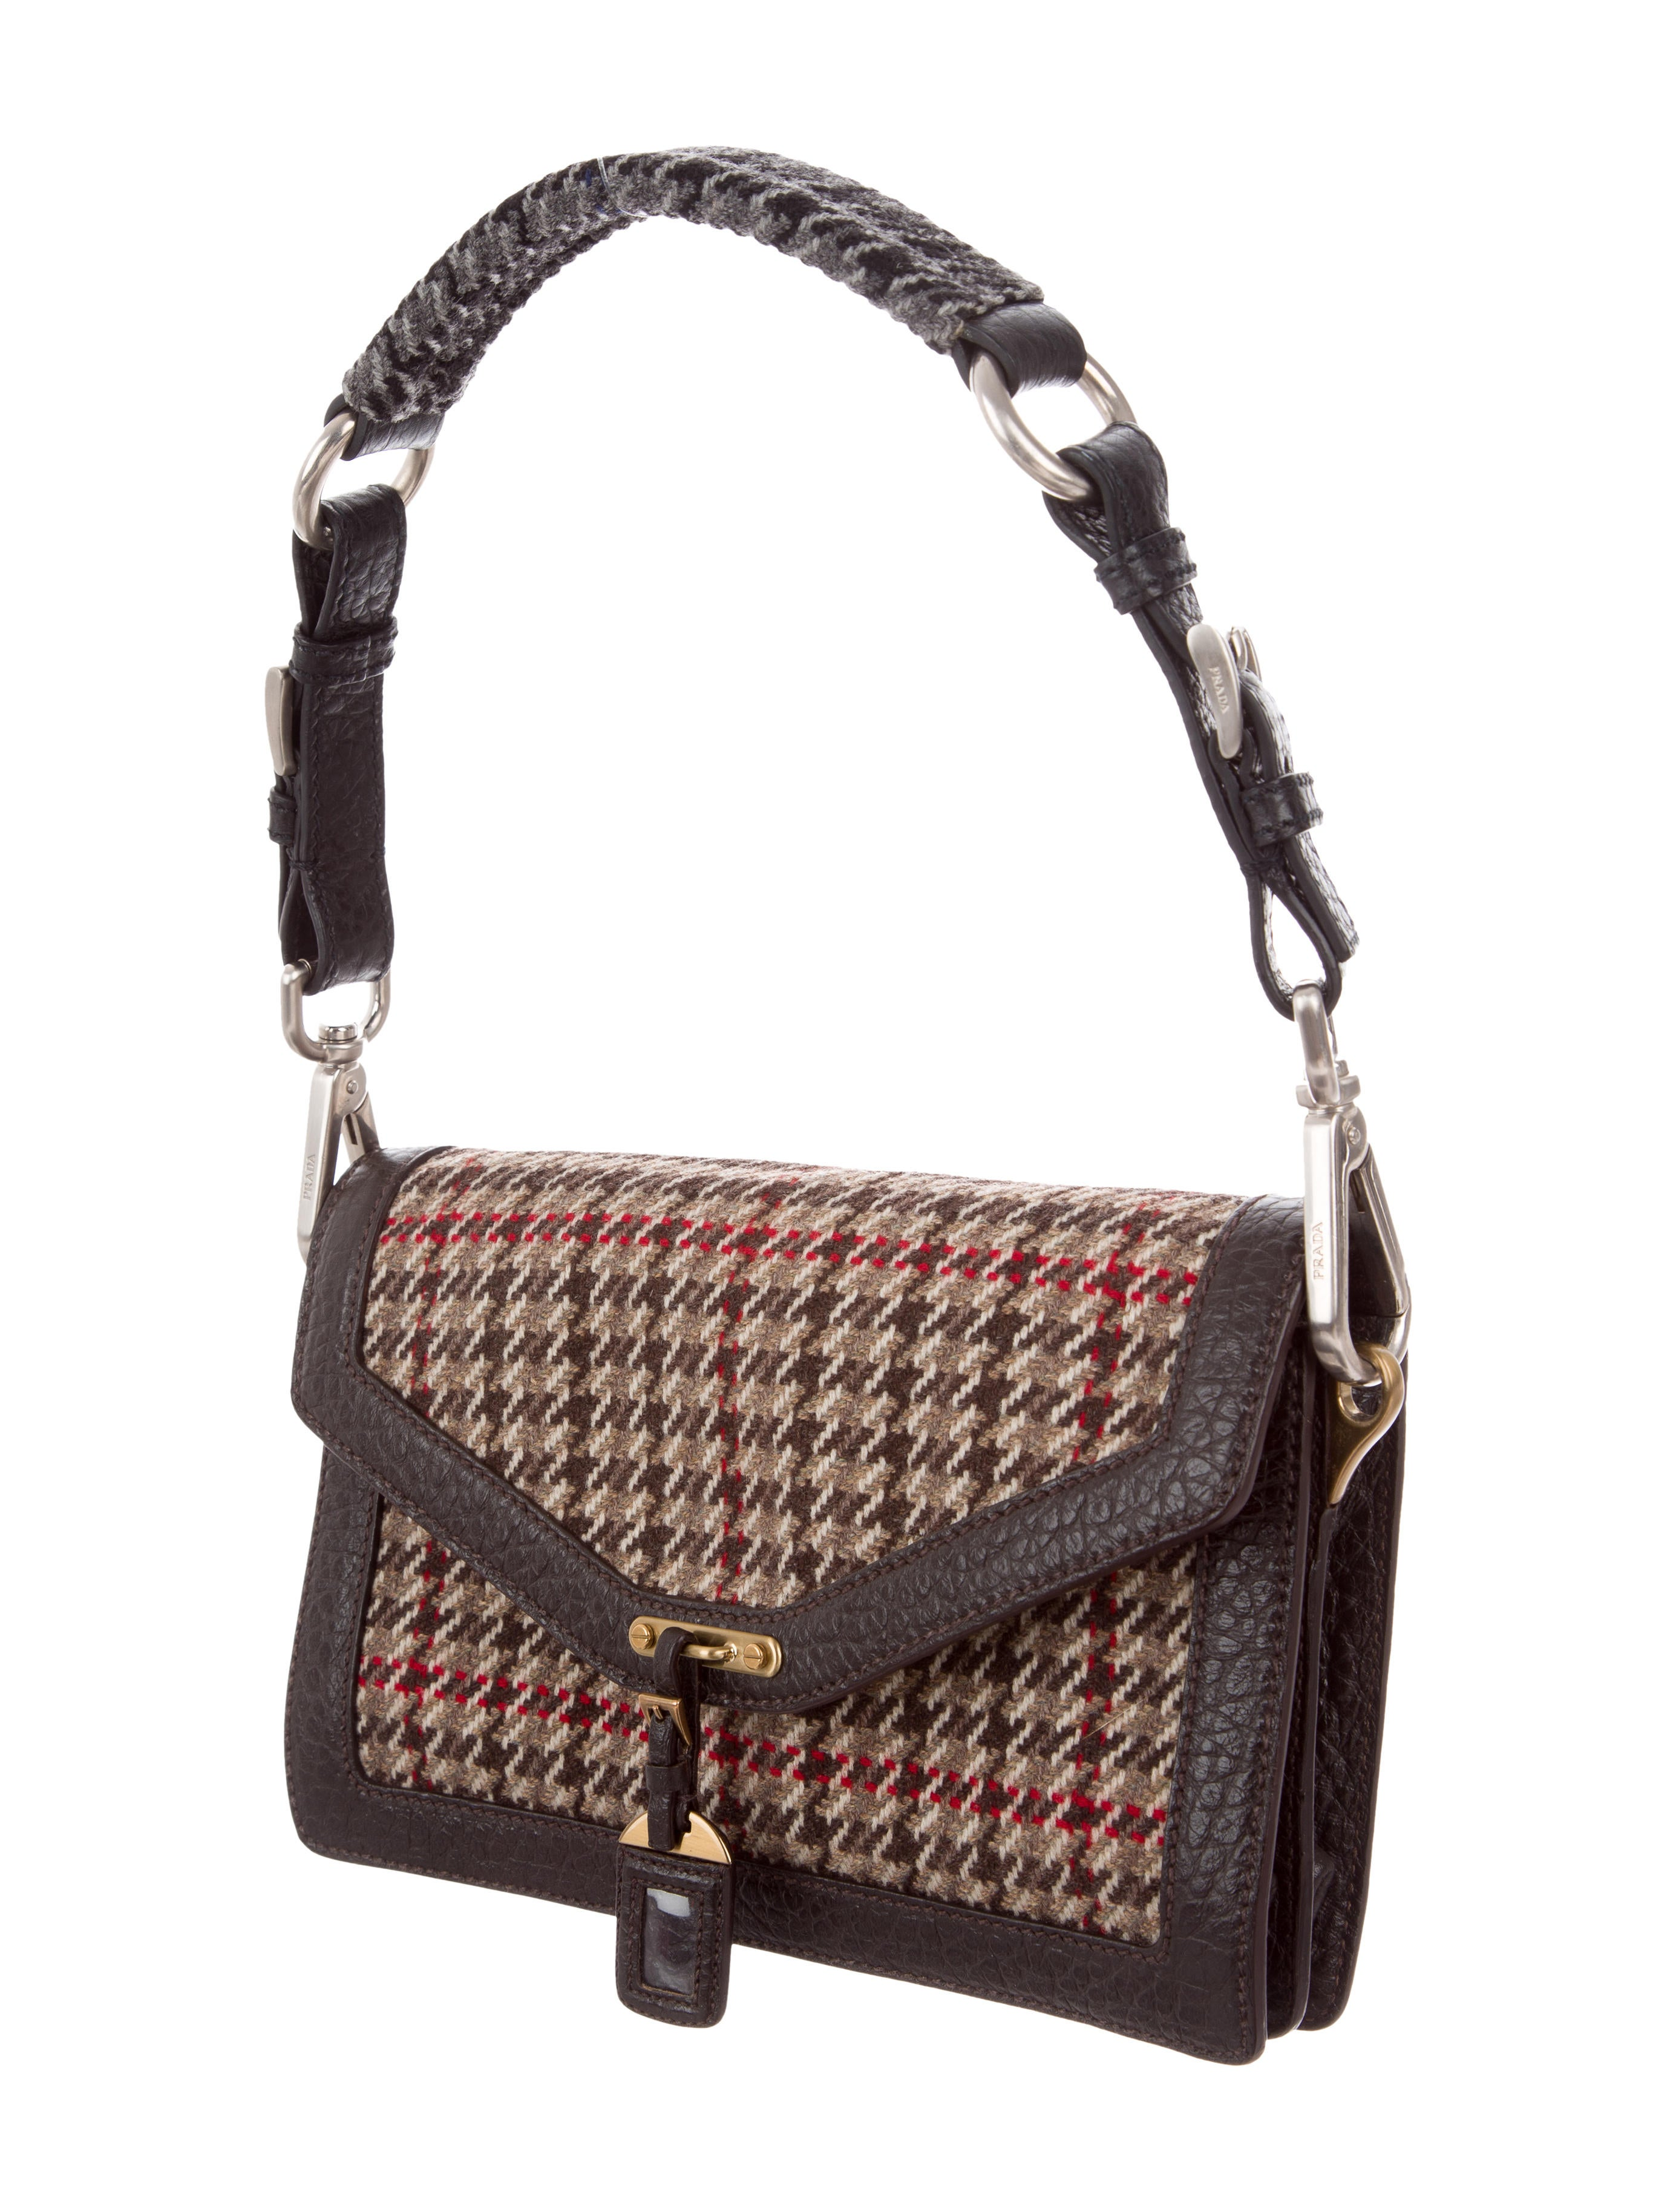 0fb8fa7b00 Prada Tweed   Leather Shoulder Bag - Handbags - PRA175519